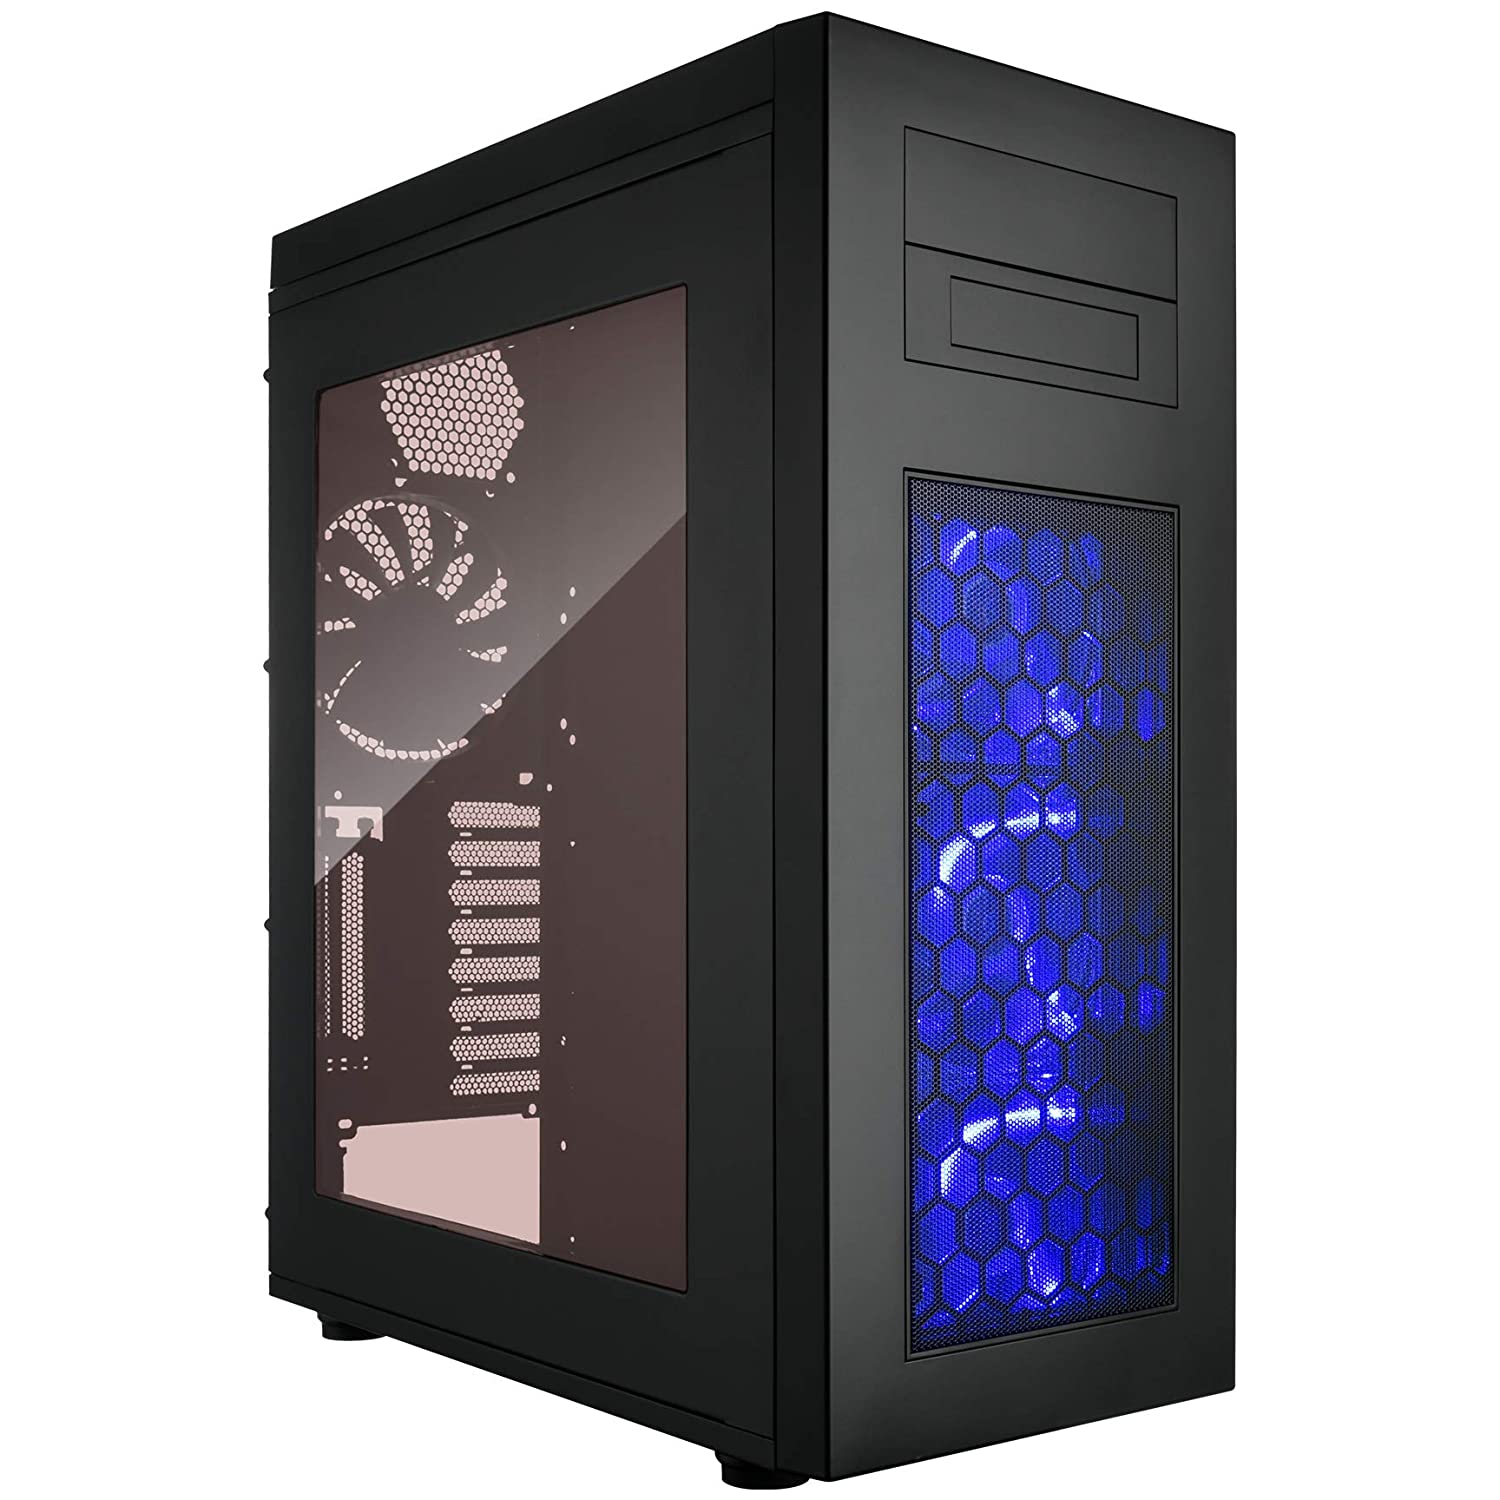 Rosewill ATX Slim Full Tower Gaming Computer Case with Blue LED Front Fans Case Rise Glow Black